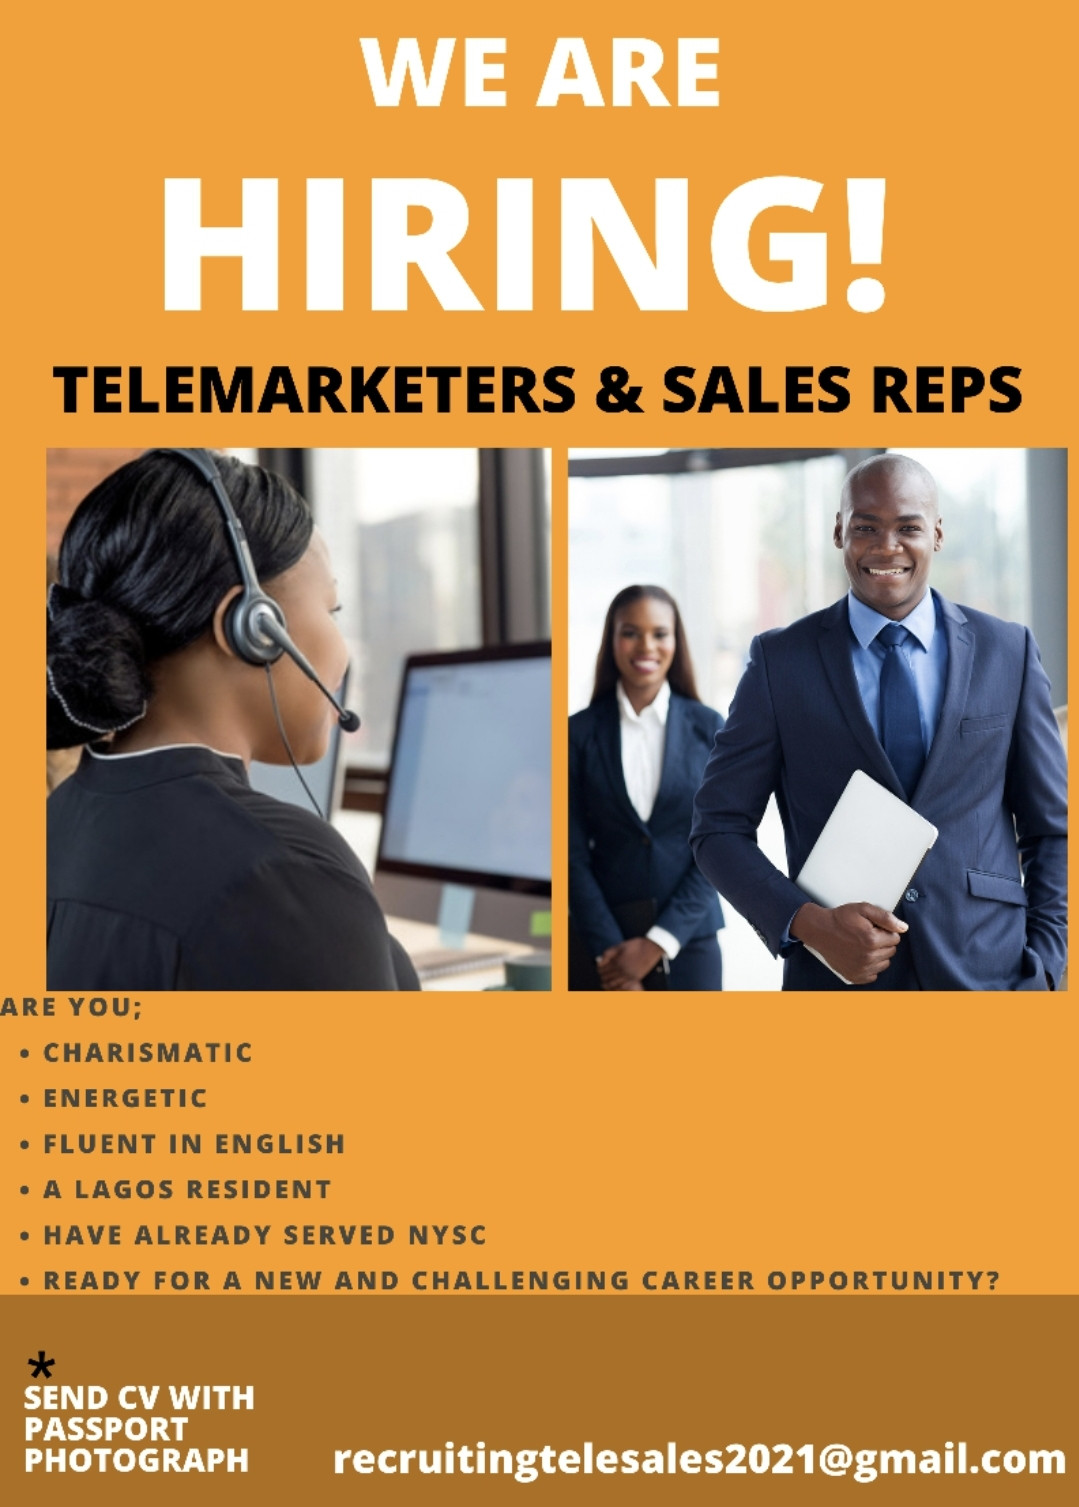 We are Hiring! Telemarketers & Sales Reps